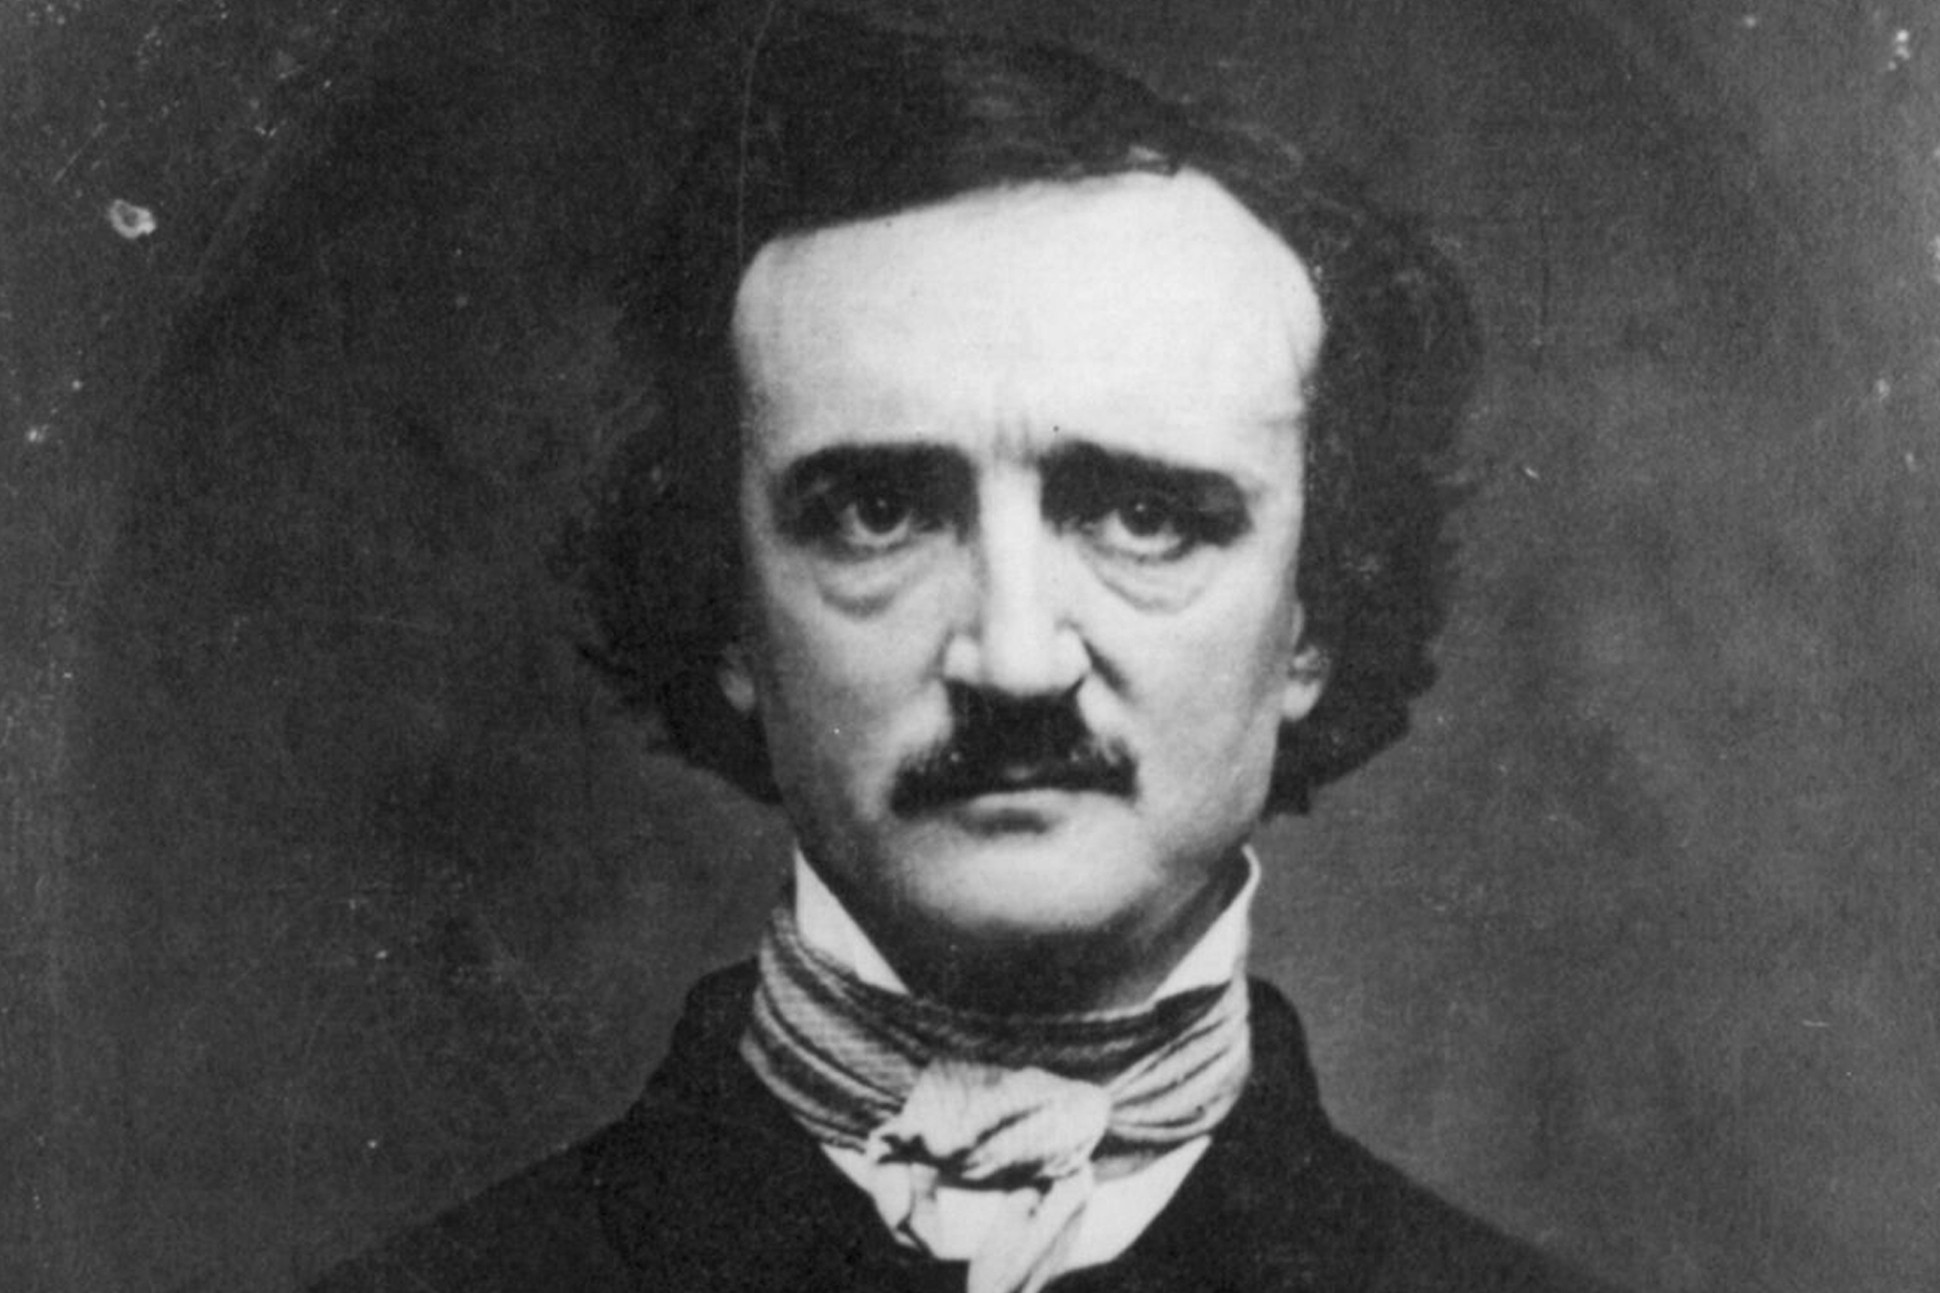 edgar allan poe 12 The edgar allan poe keepsake journal includes 10 illustrated quote cards by edgar allan poe 9781937994570 (diary, 2015) delivery uk delivery is usually within 8 to 10 working days international delivery varies by country, please see the wordery store help page for details.